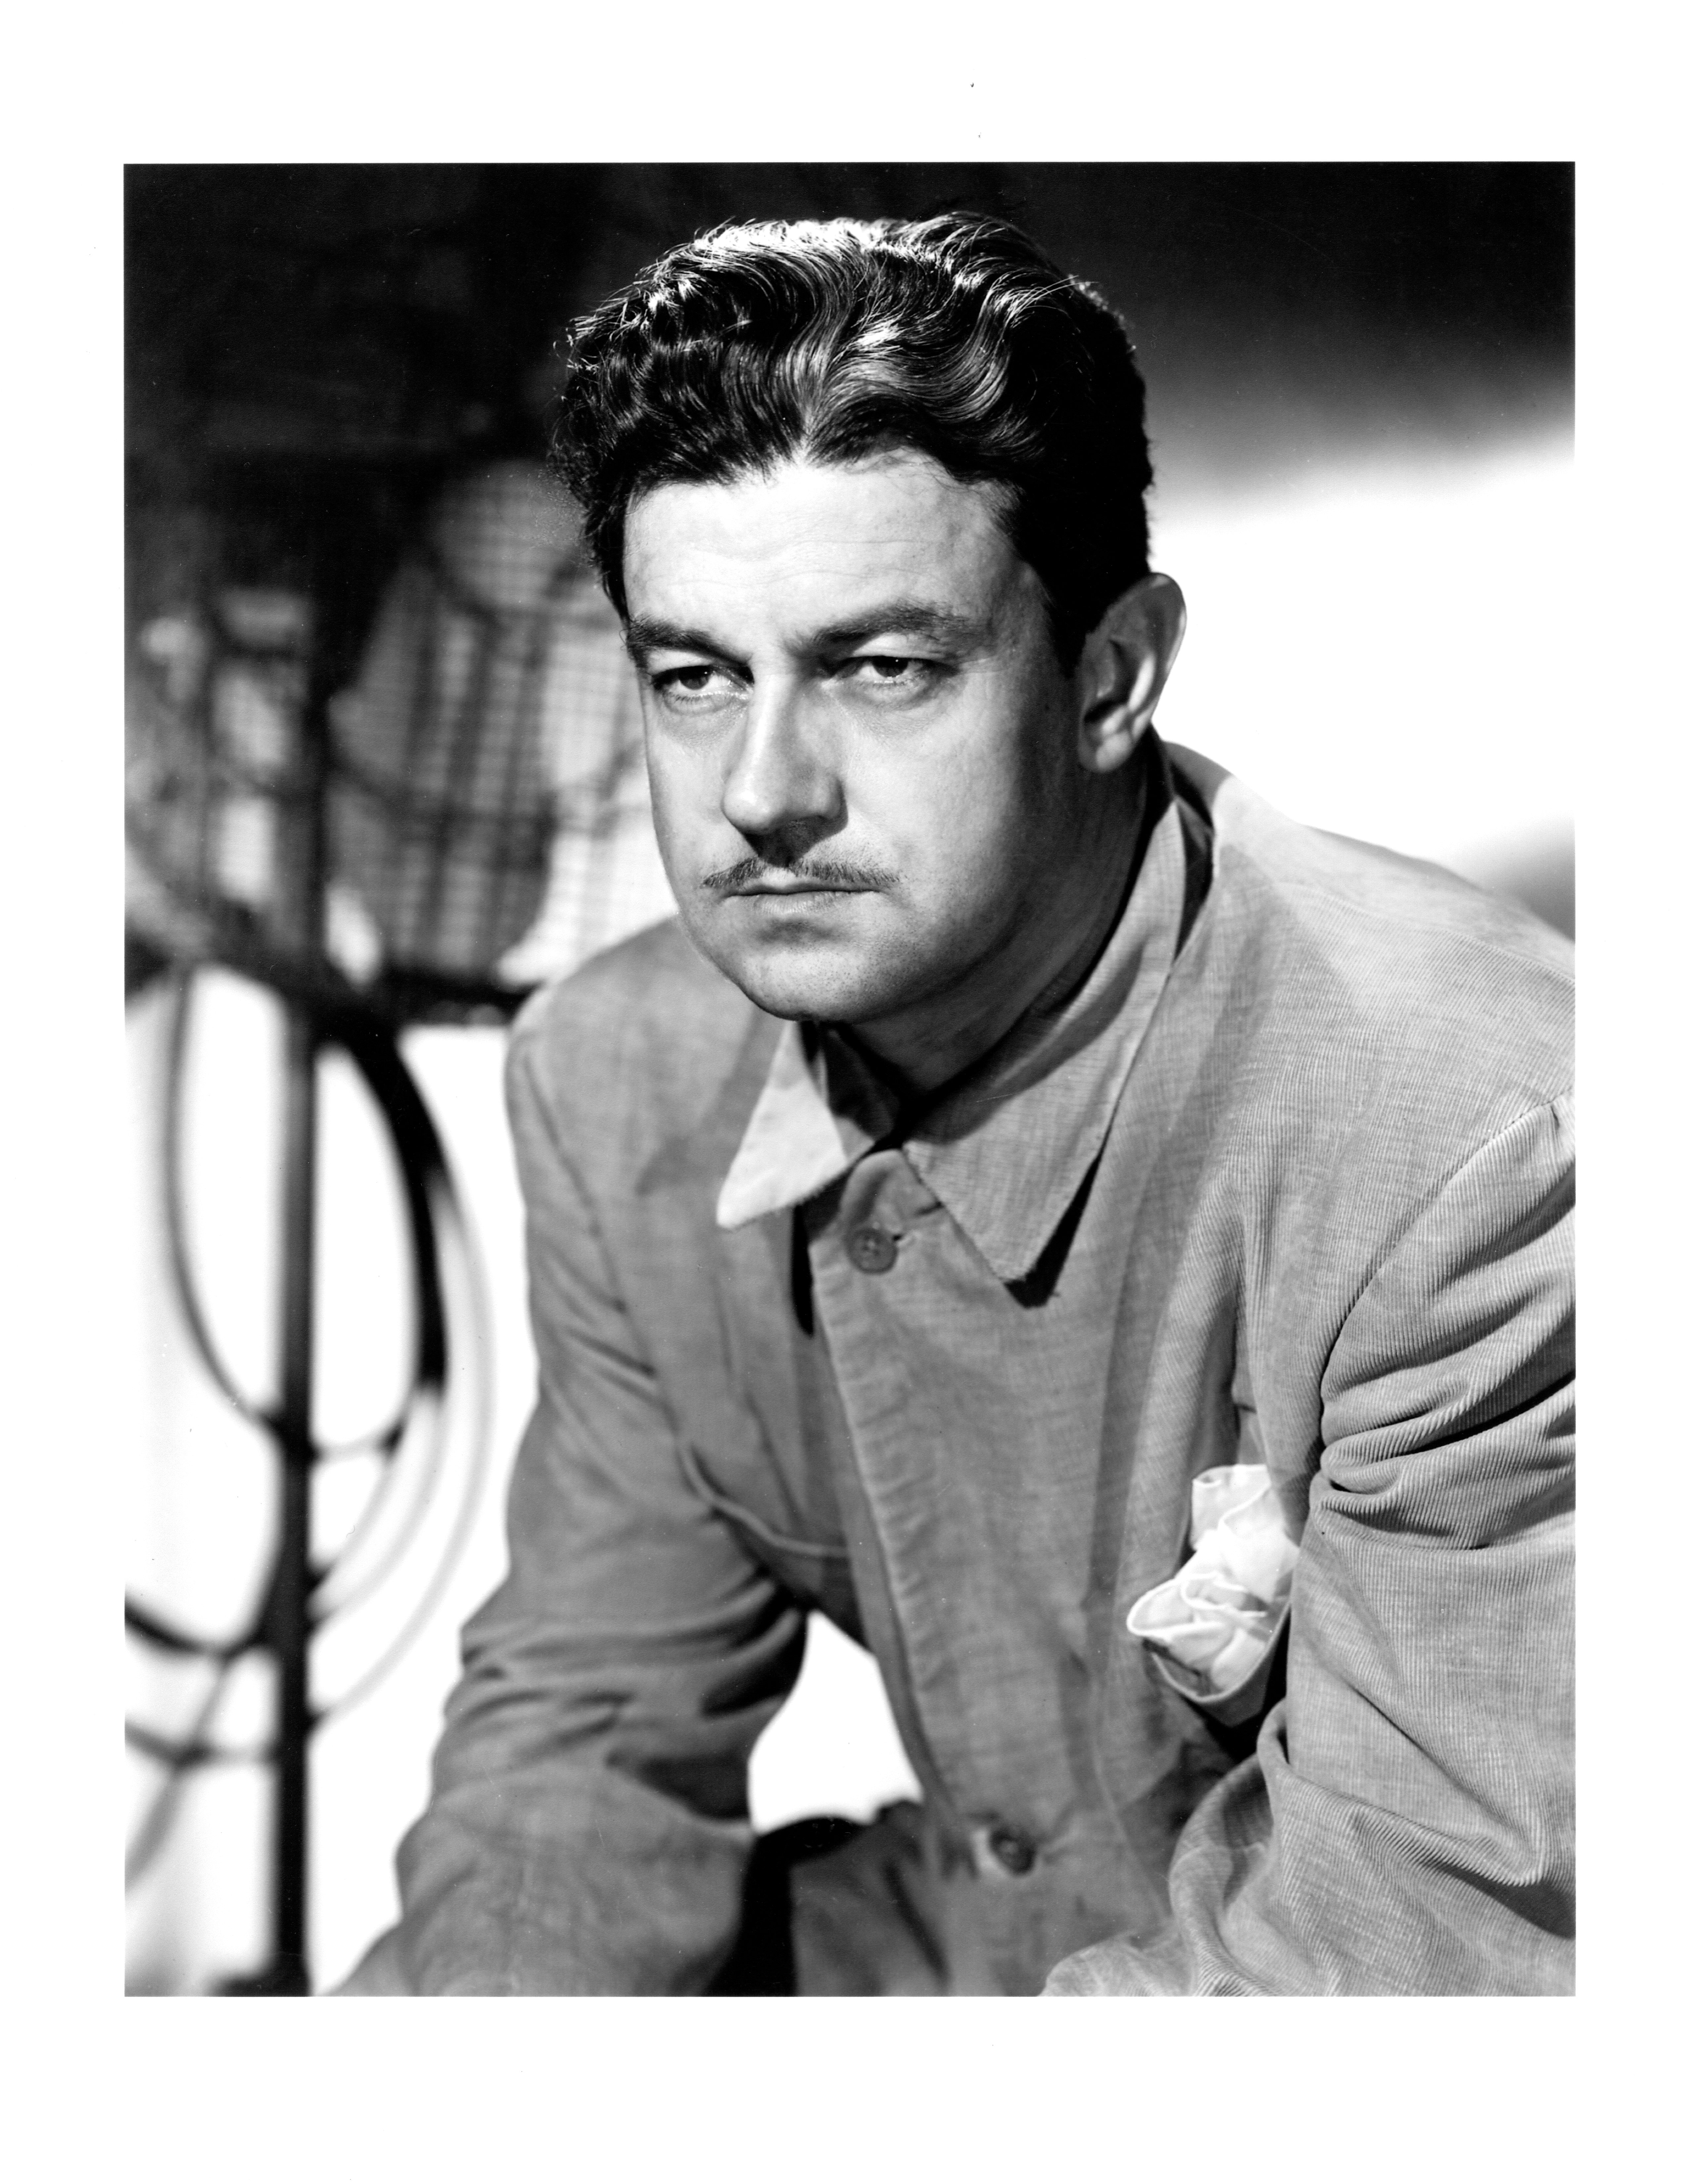 Preston Sturges, circa 1940. Courtesy of the Academy of Motion Picture Arts and Sciences